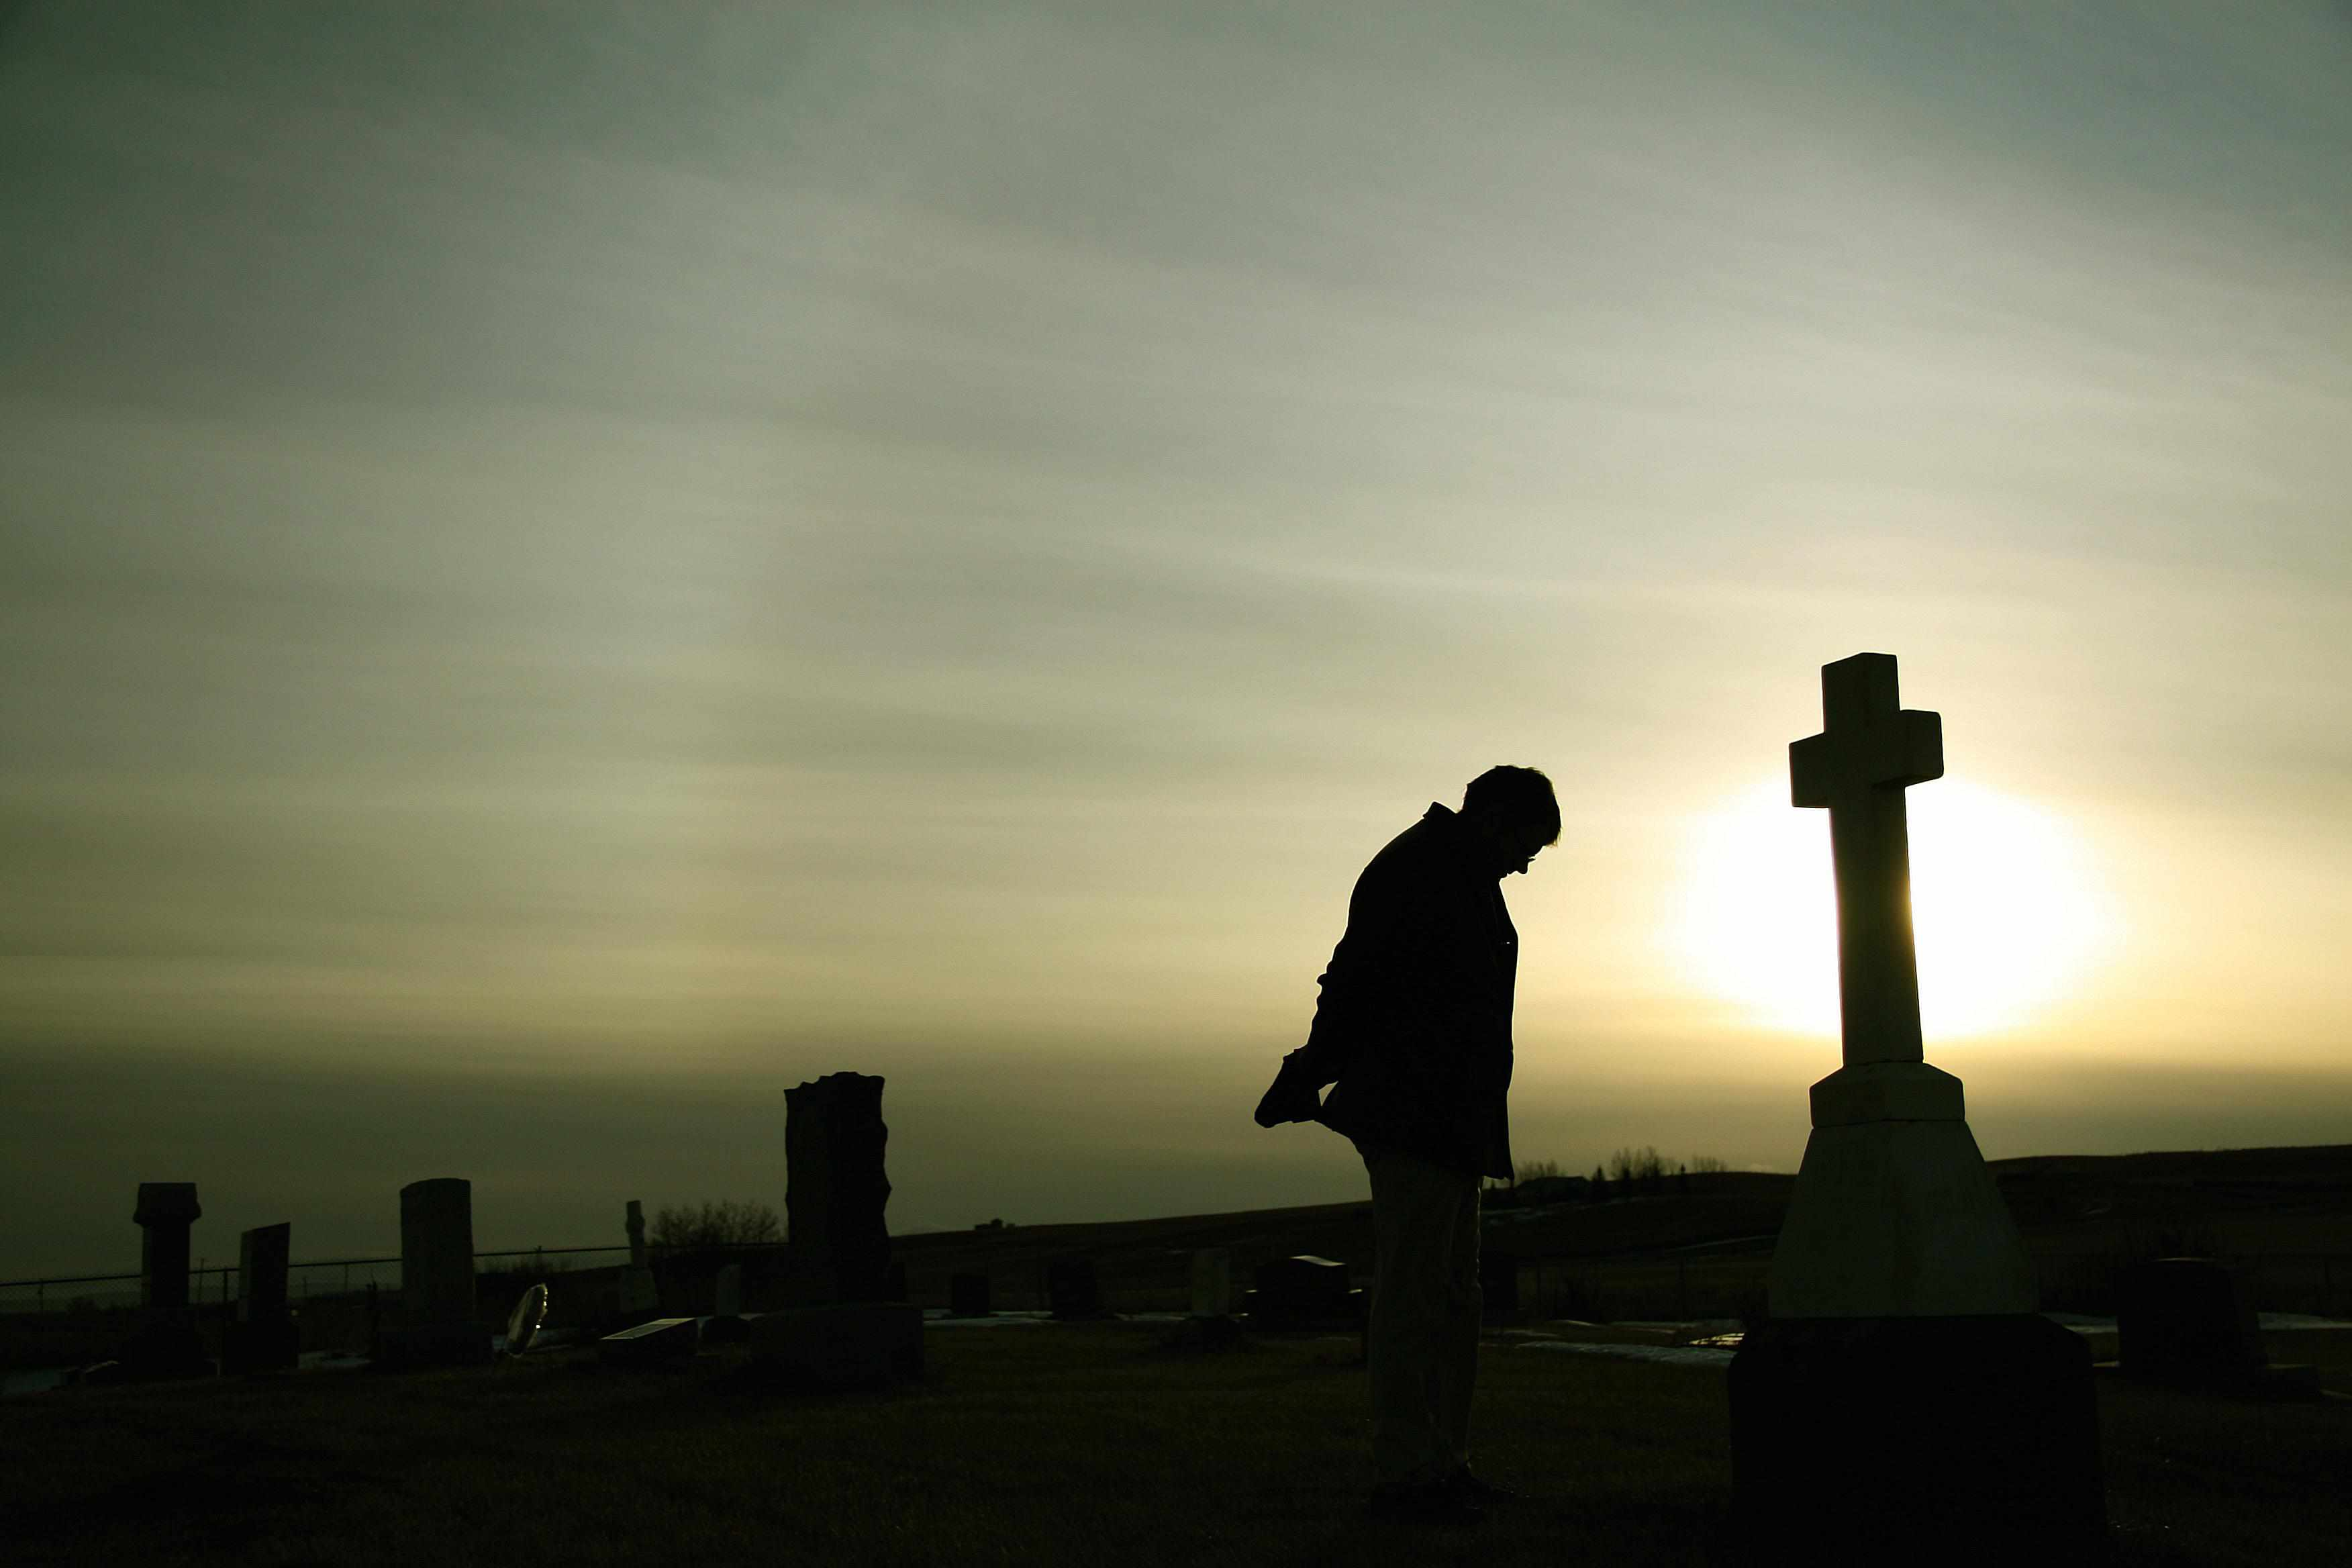 Man mourning in a graveyard.